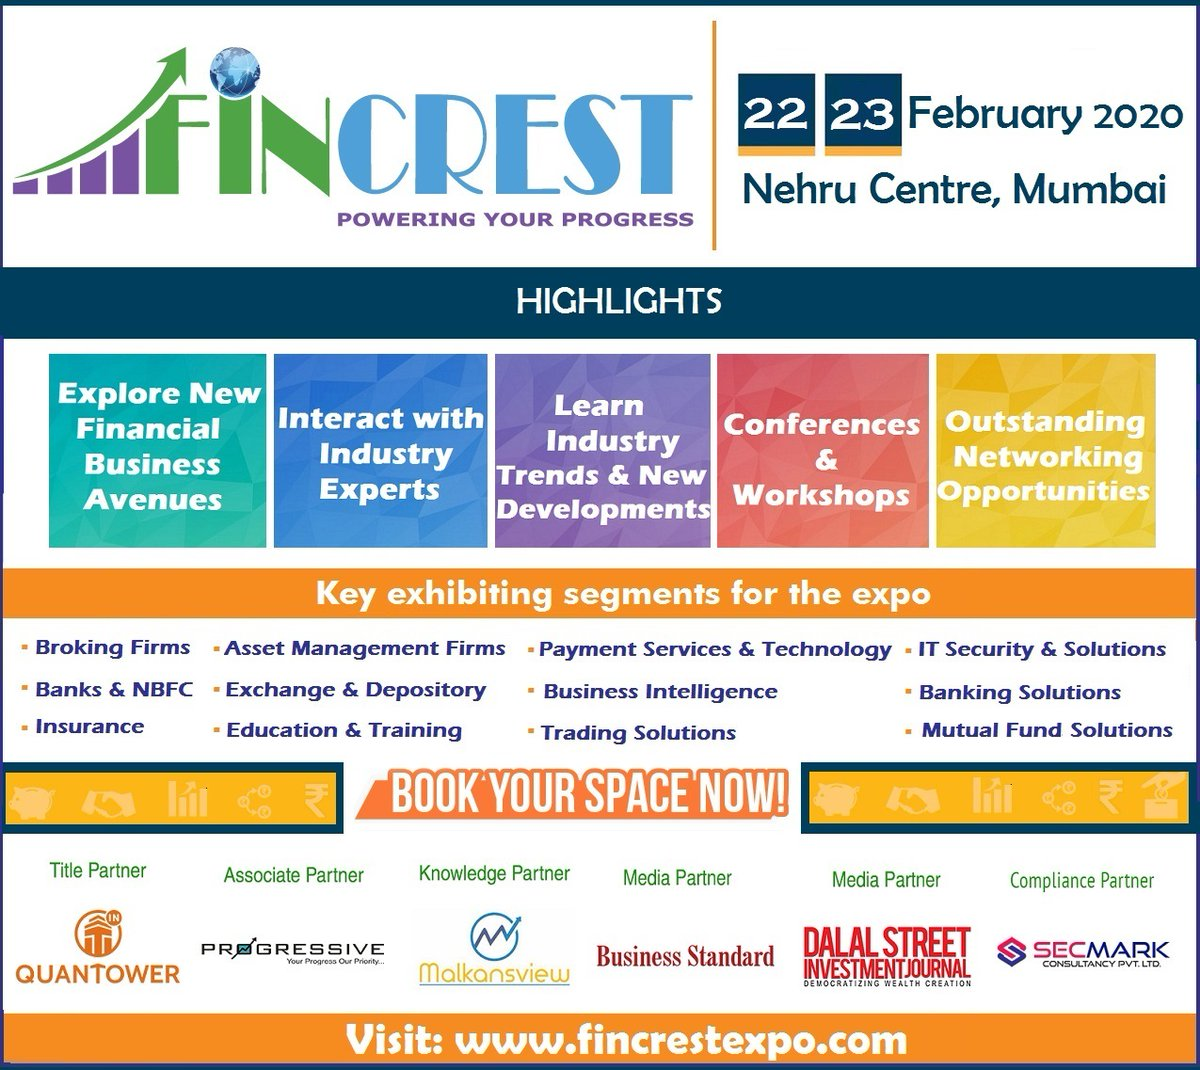 Being an #exhibitor at #FincrestExpo comes with many opportunities! Register Now: https://www.fincrestexpo.com/want_to_exhibit.php…  #wealthcreation #BusinessGrowth #networking #stockmarkets #Banking #mutualfunds #technologies #conferences #insurance #tradingpic.twitter.com/AKxZ1t4lqB